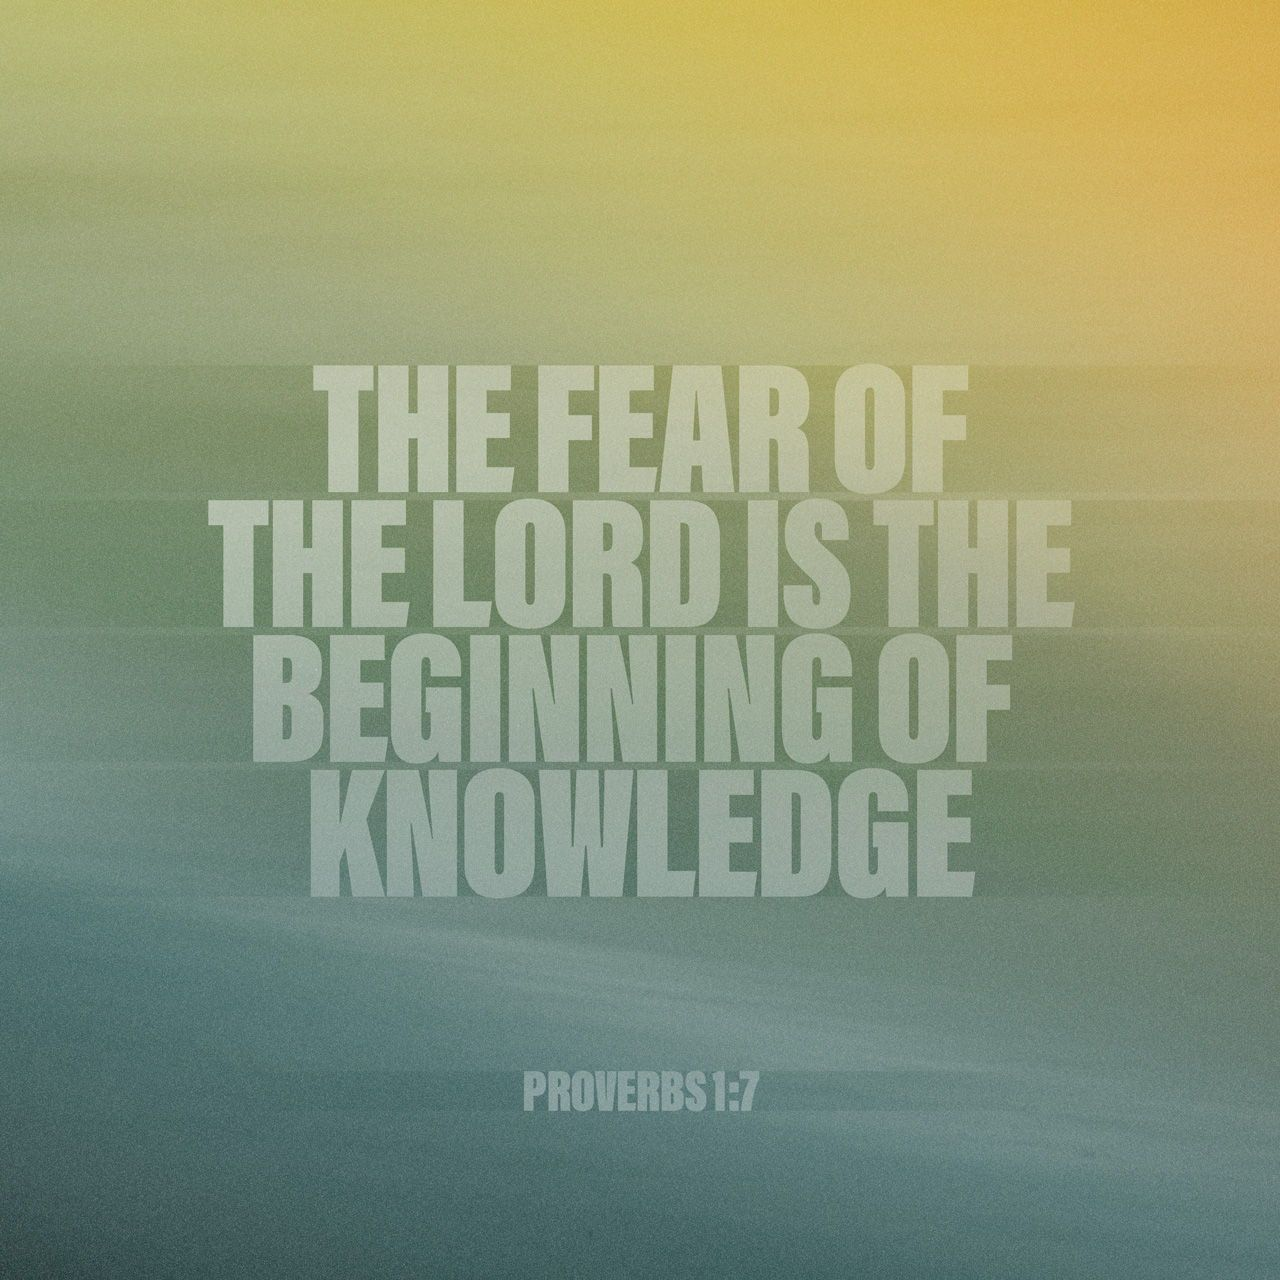 The fear of the Lord is the beginning of knowledge; fools